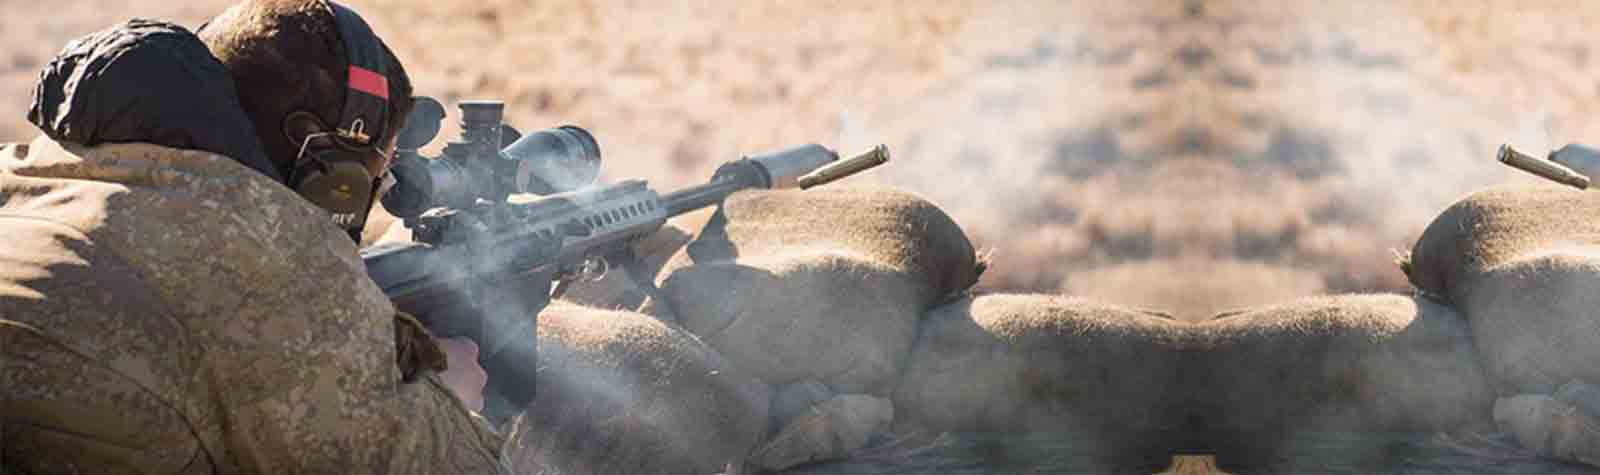 10 Best Airsoft Sniper Rifle Review | The Ultimate Guide 2021